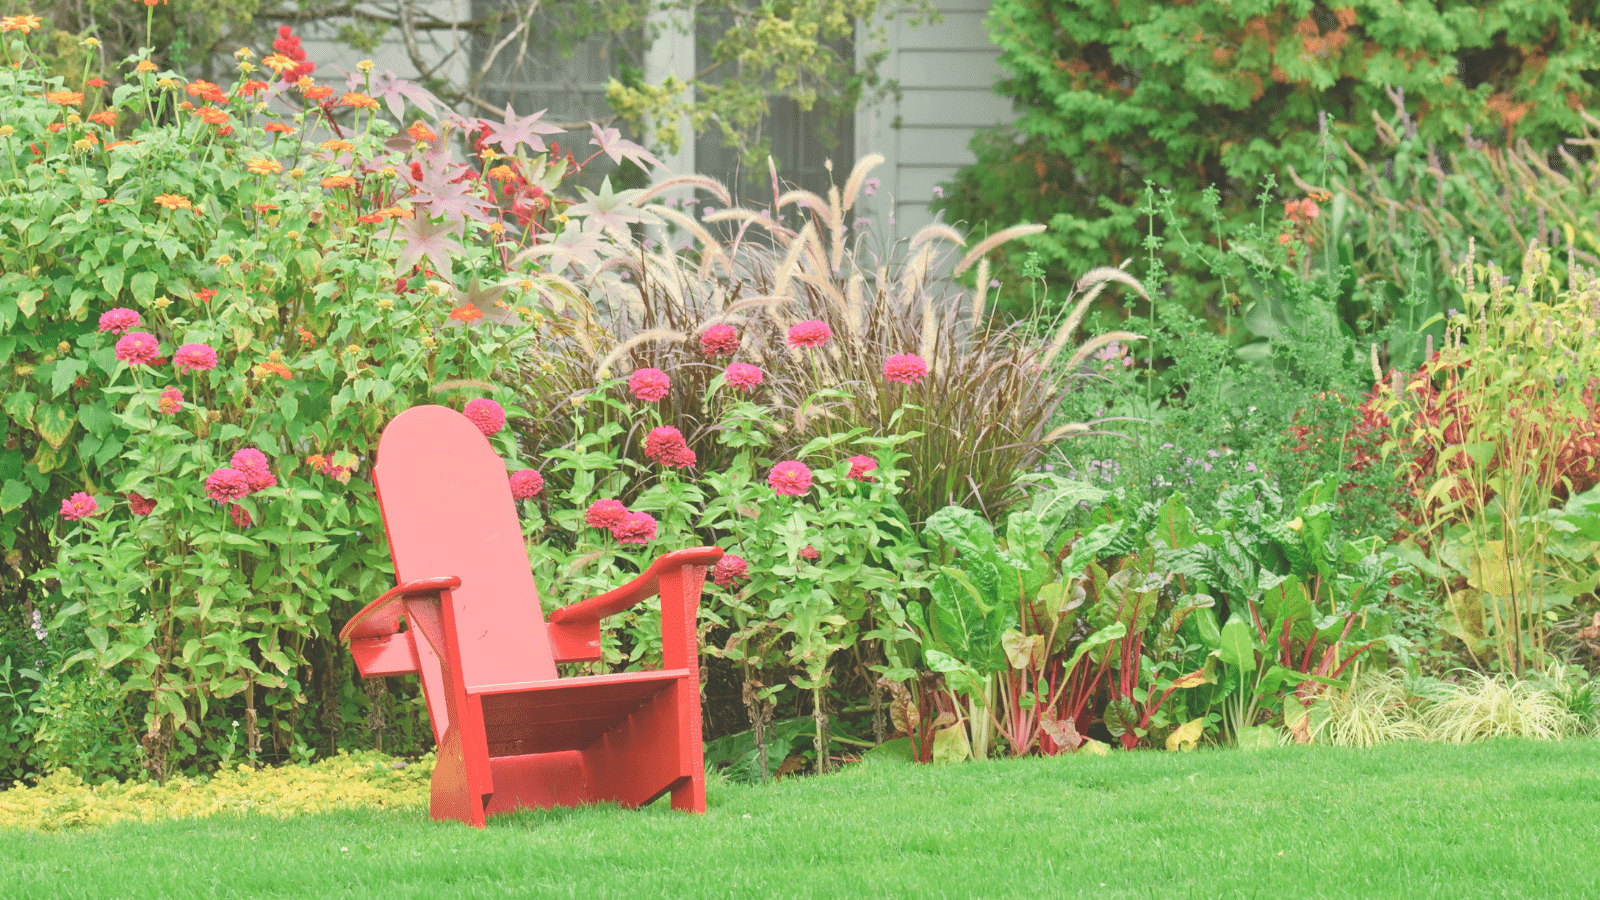 Spruce up your outdoor landscaping for spring